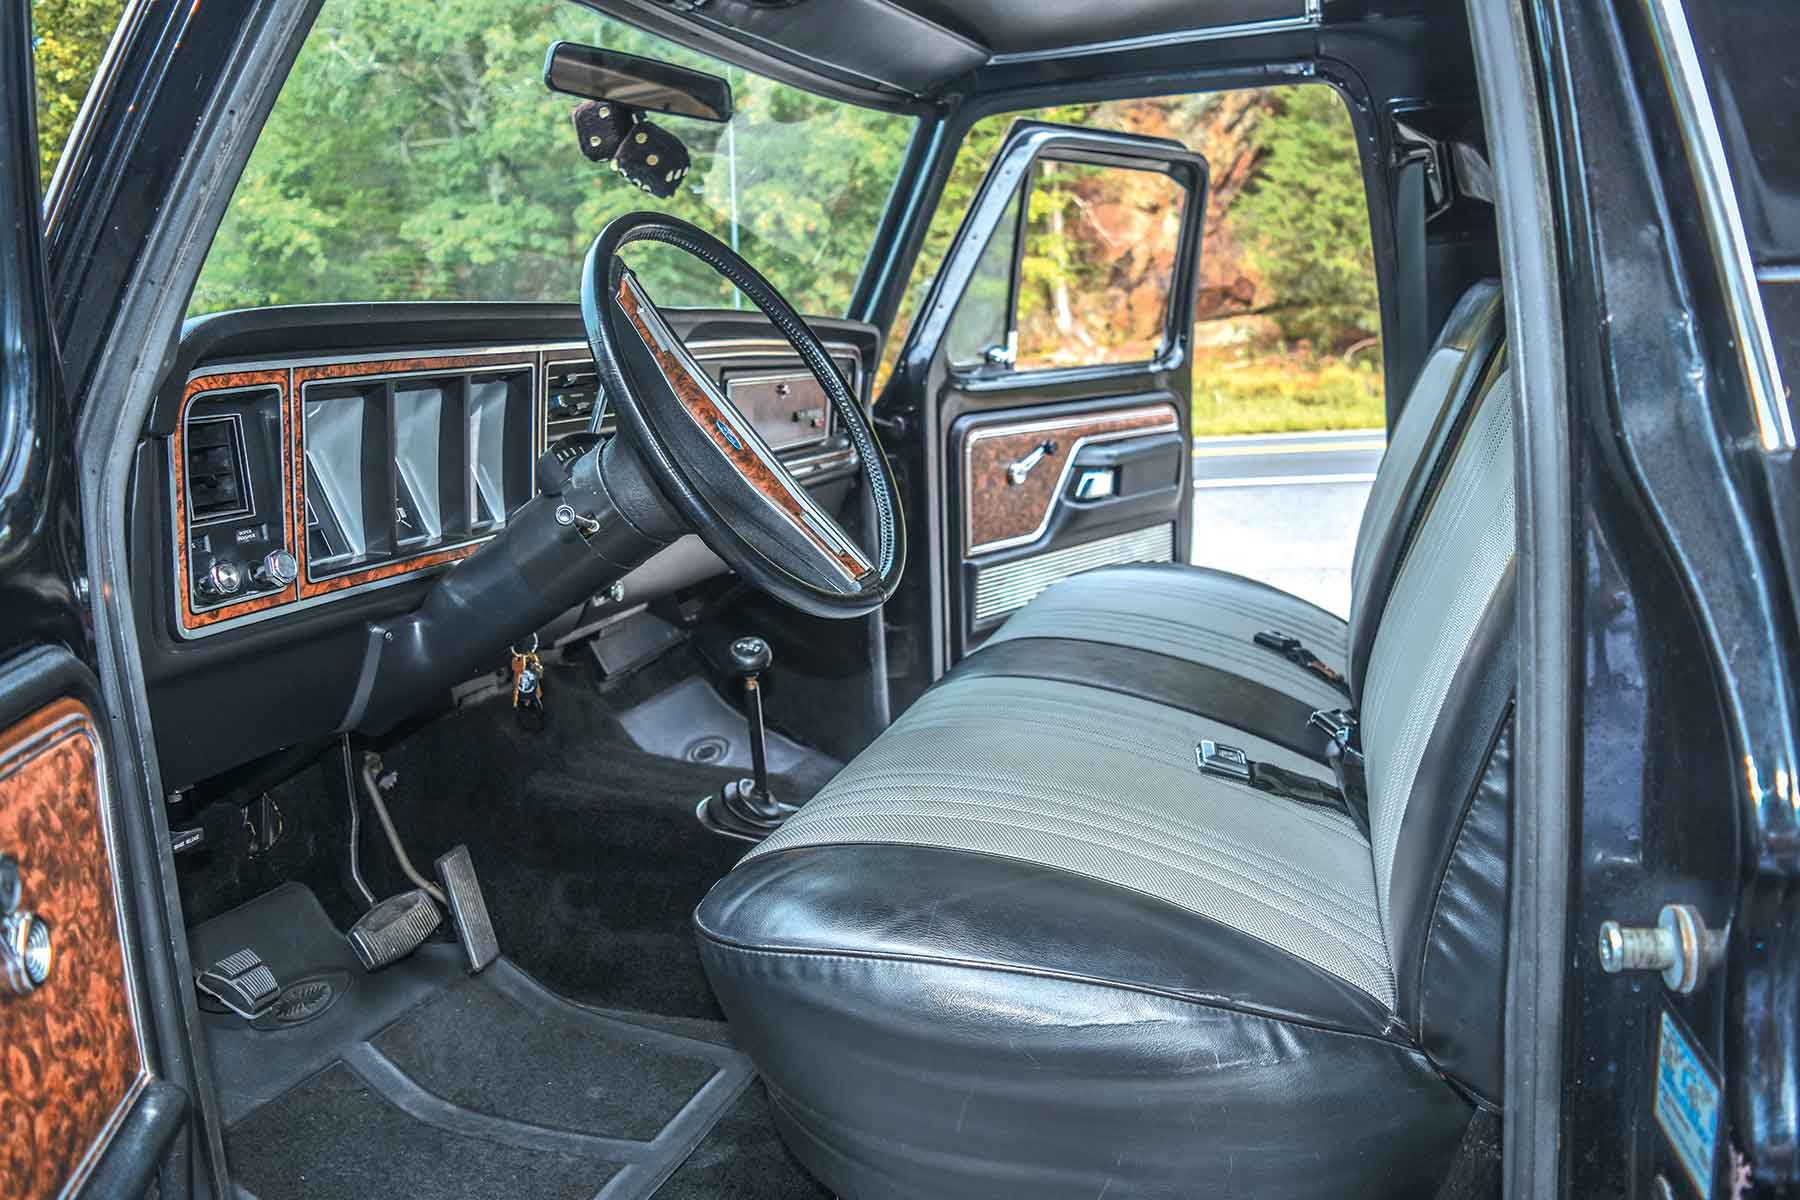 1978 Ford Bronco - David Brooks - LMC Truck Life